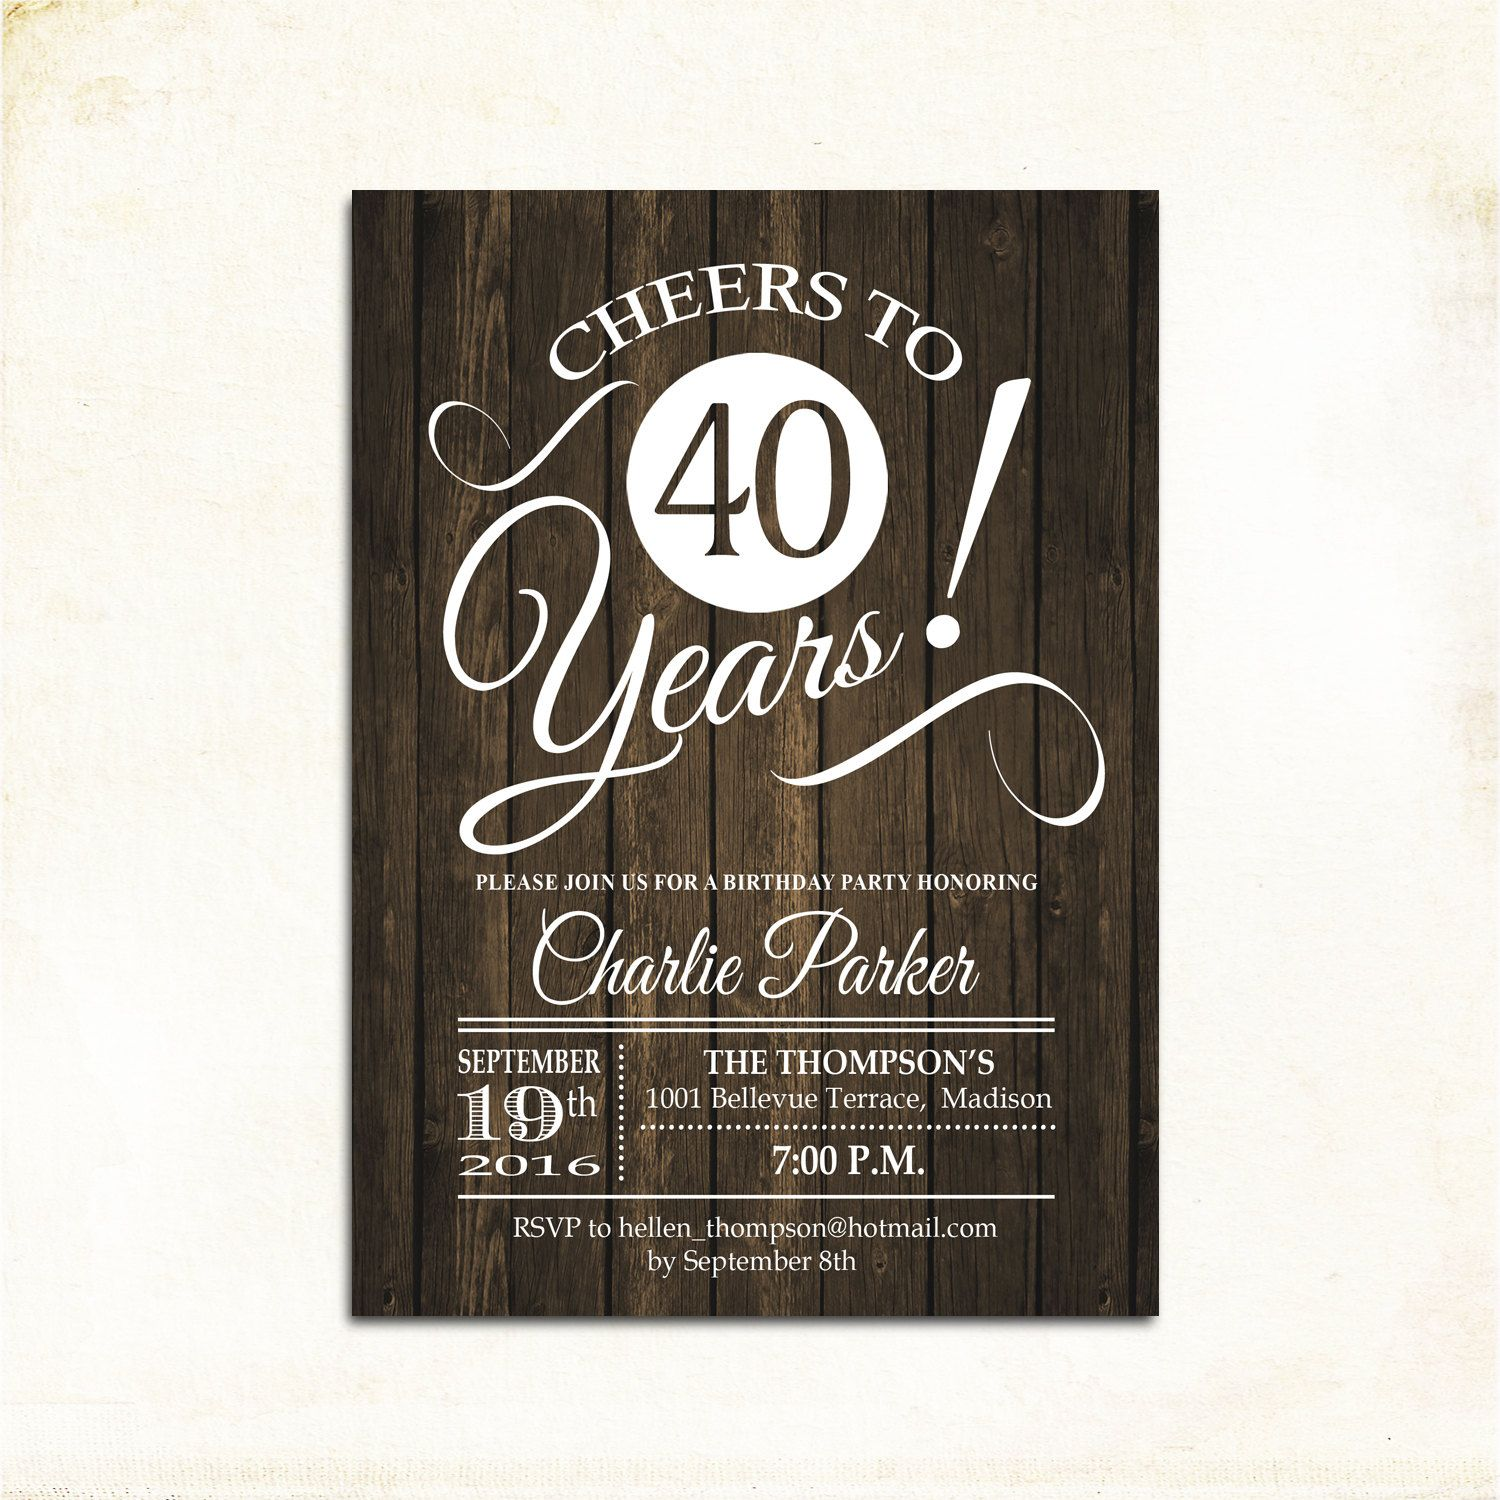 Birthday Invitation Beers and Cheers Man Birthday by andyneal331 – Personalized 40th Birthday Invitations